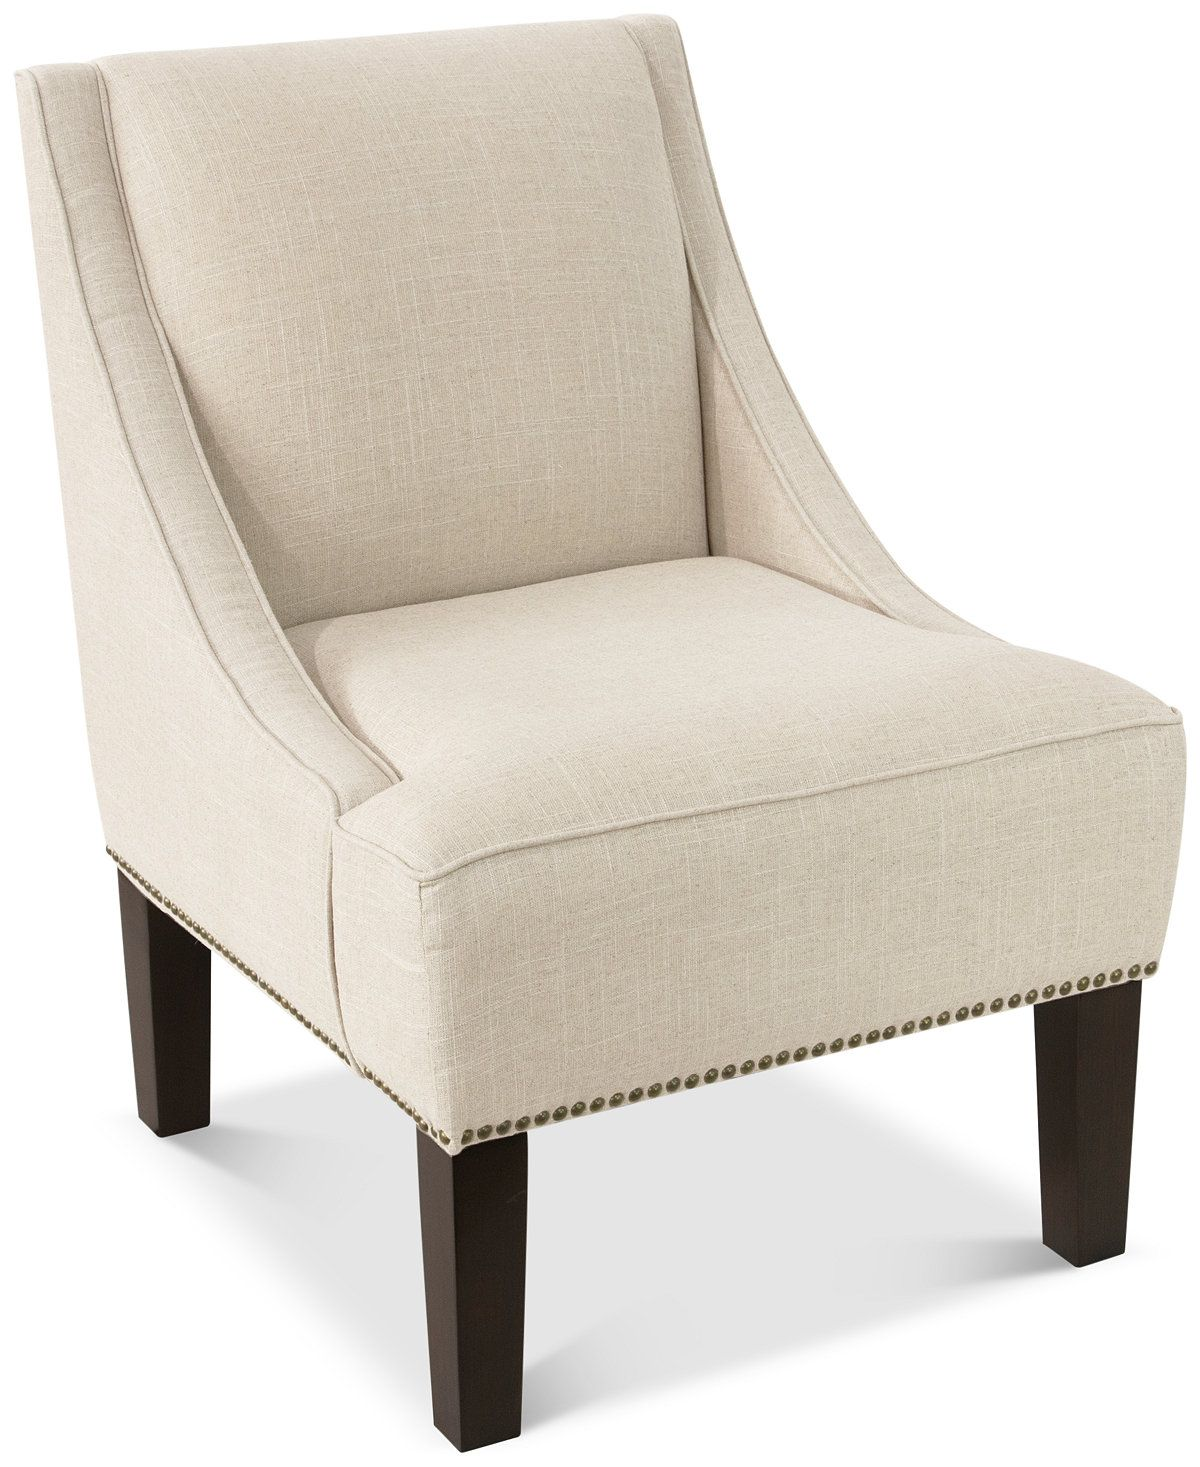 Glendale Nail Button Swoop Arm Chair, Quick Ship Chairs